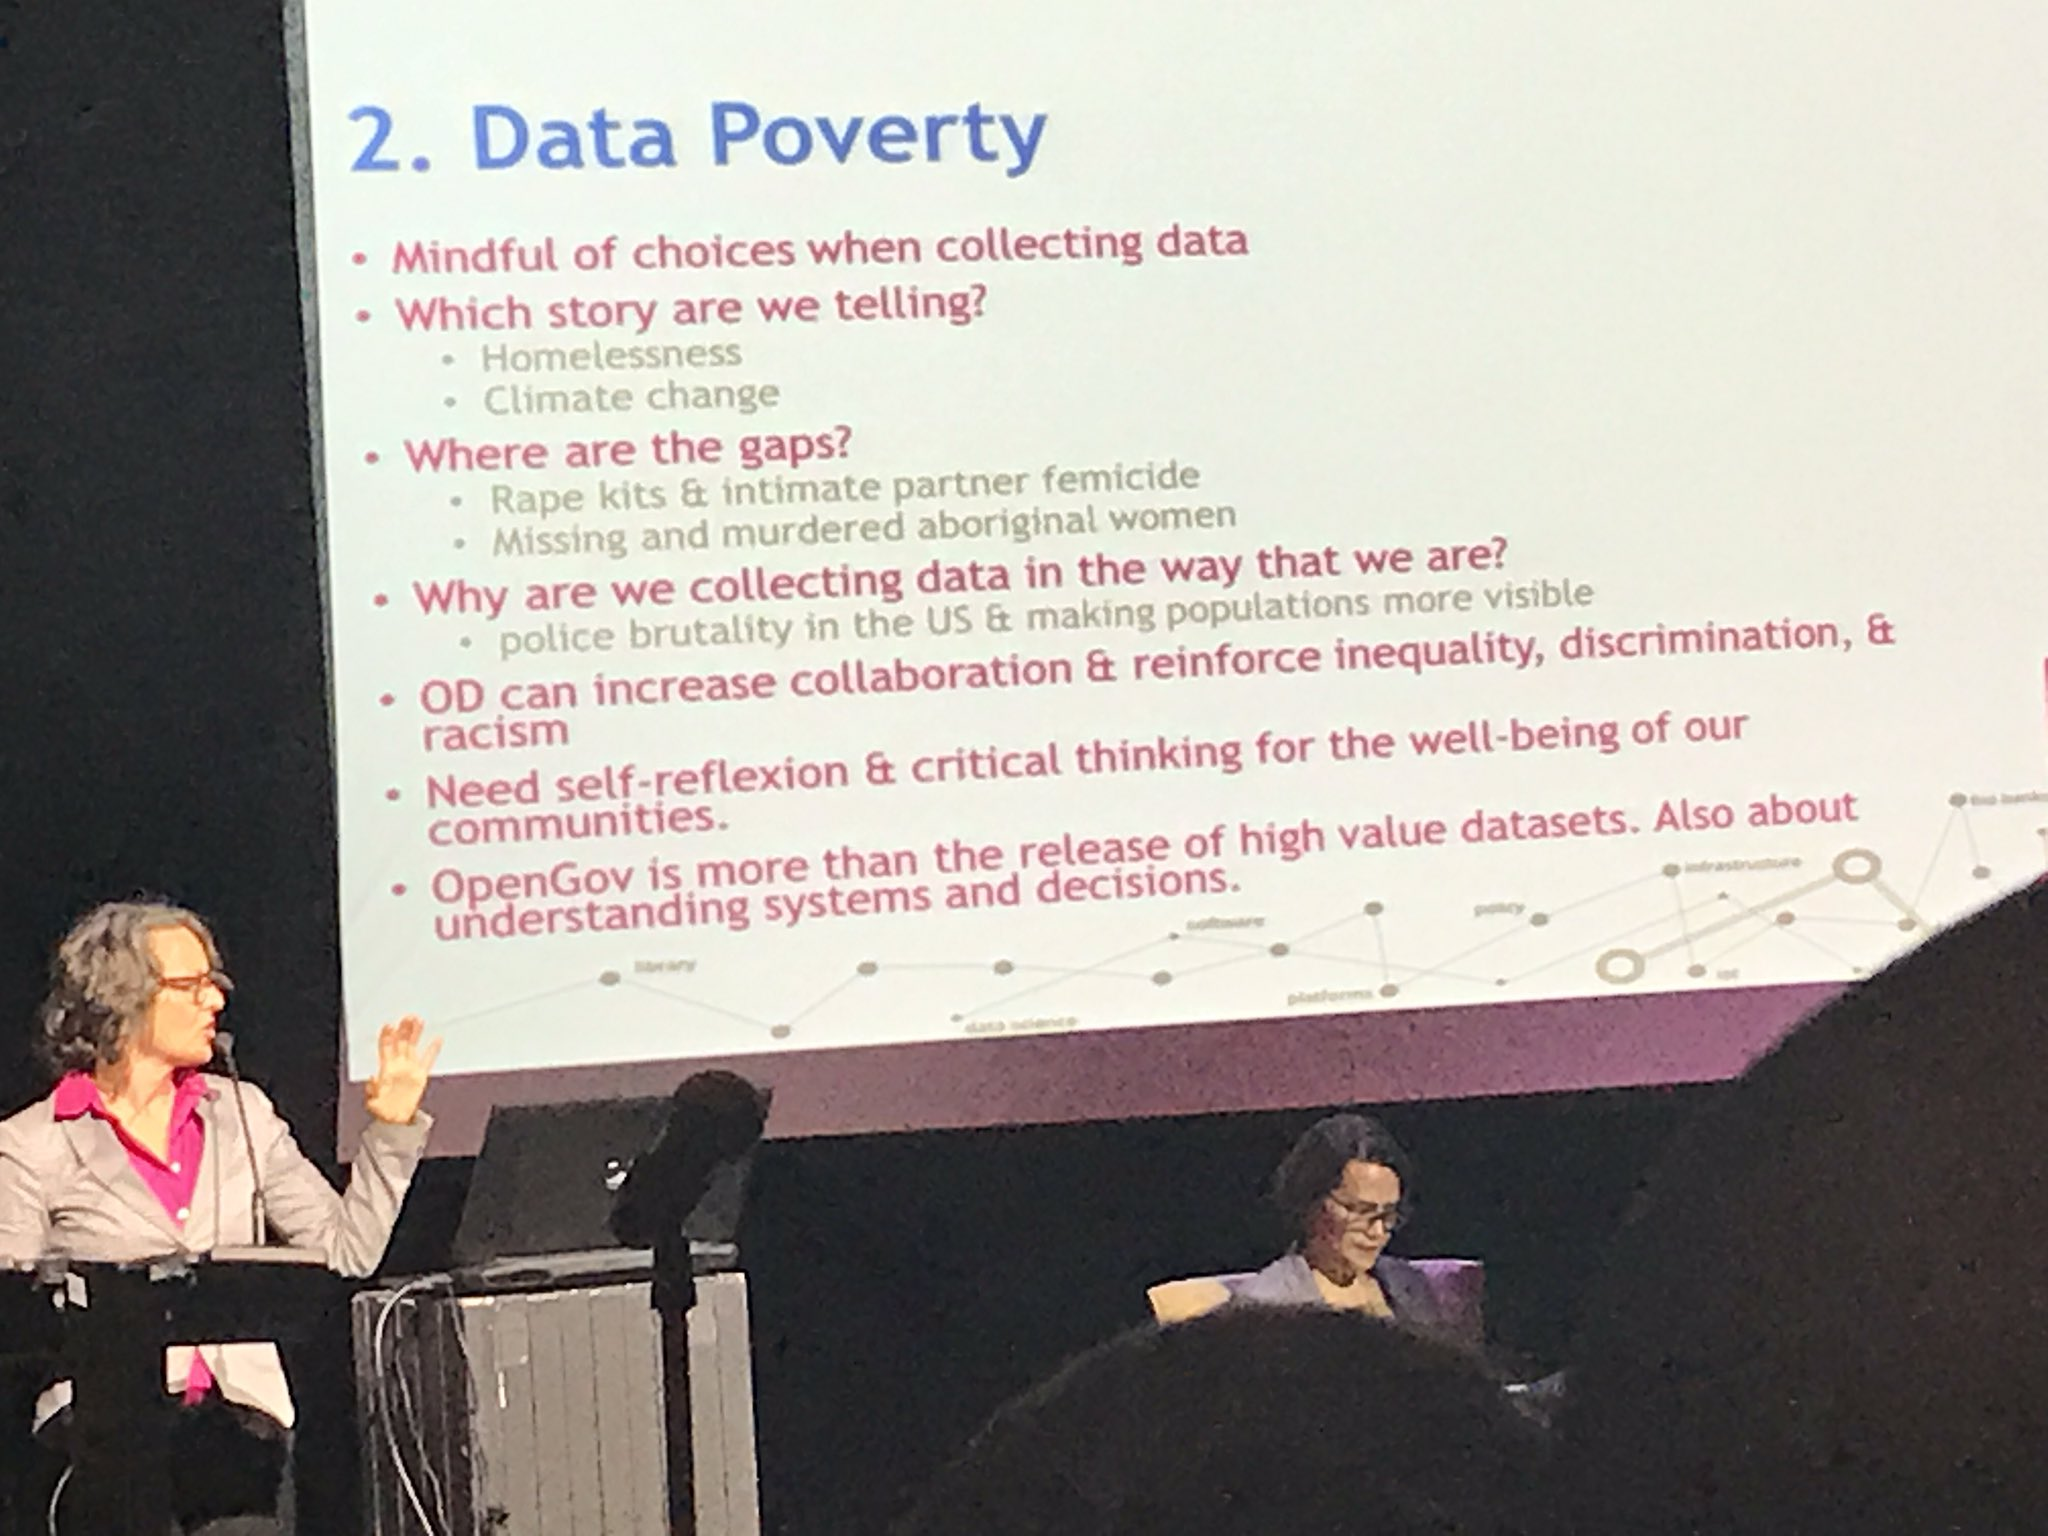 Data poverty is about questioning what data we're not collecting & the stories we're not telling - Dr. Tracey Lauriault #GOOD17 #opendata https://t.co/voz7RKgaVO